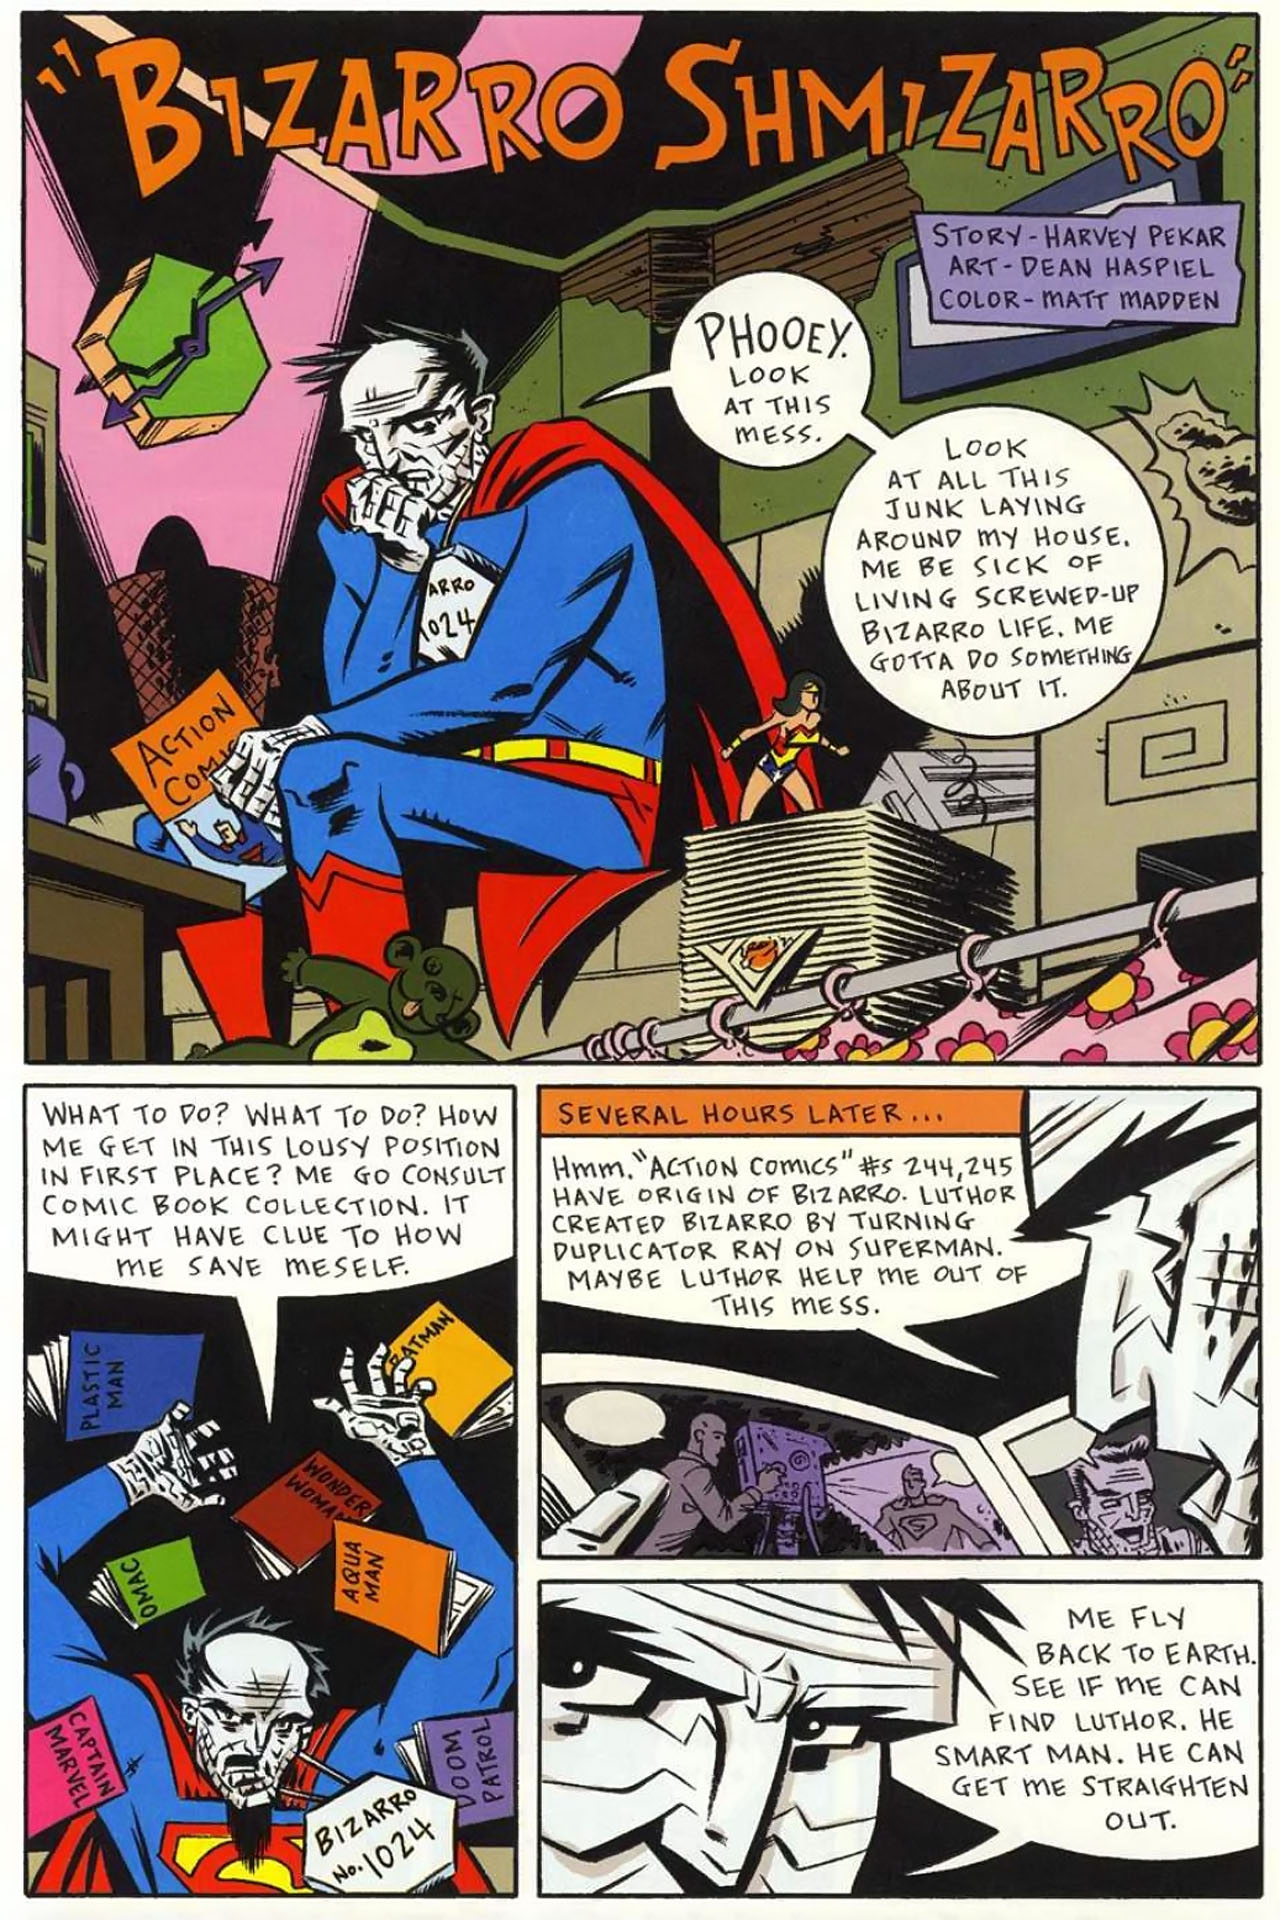 Read online Bizarro World comic -  Issue # TPB - 94